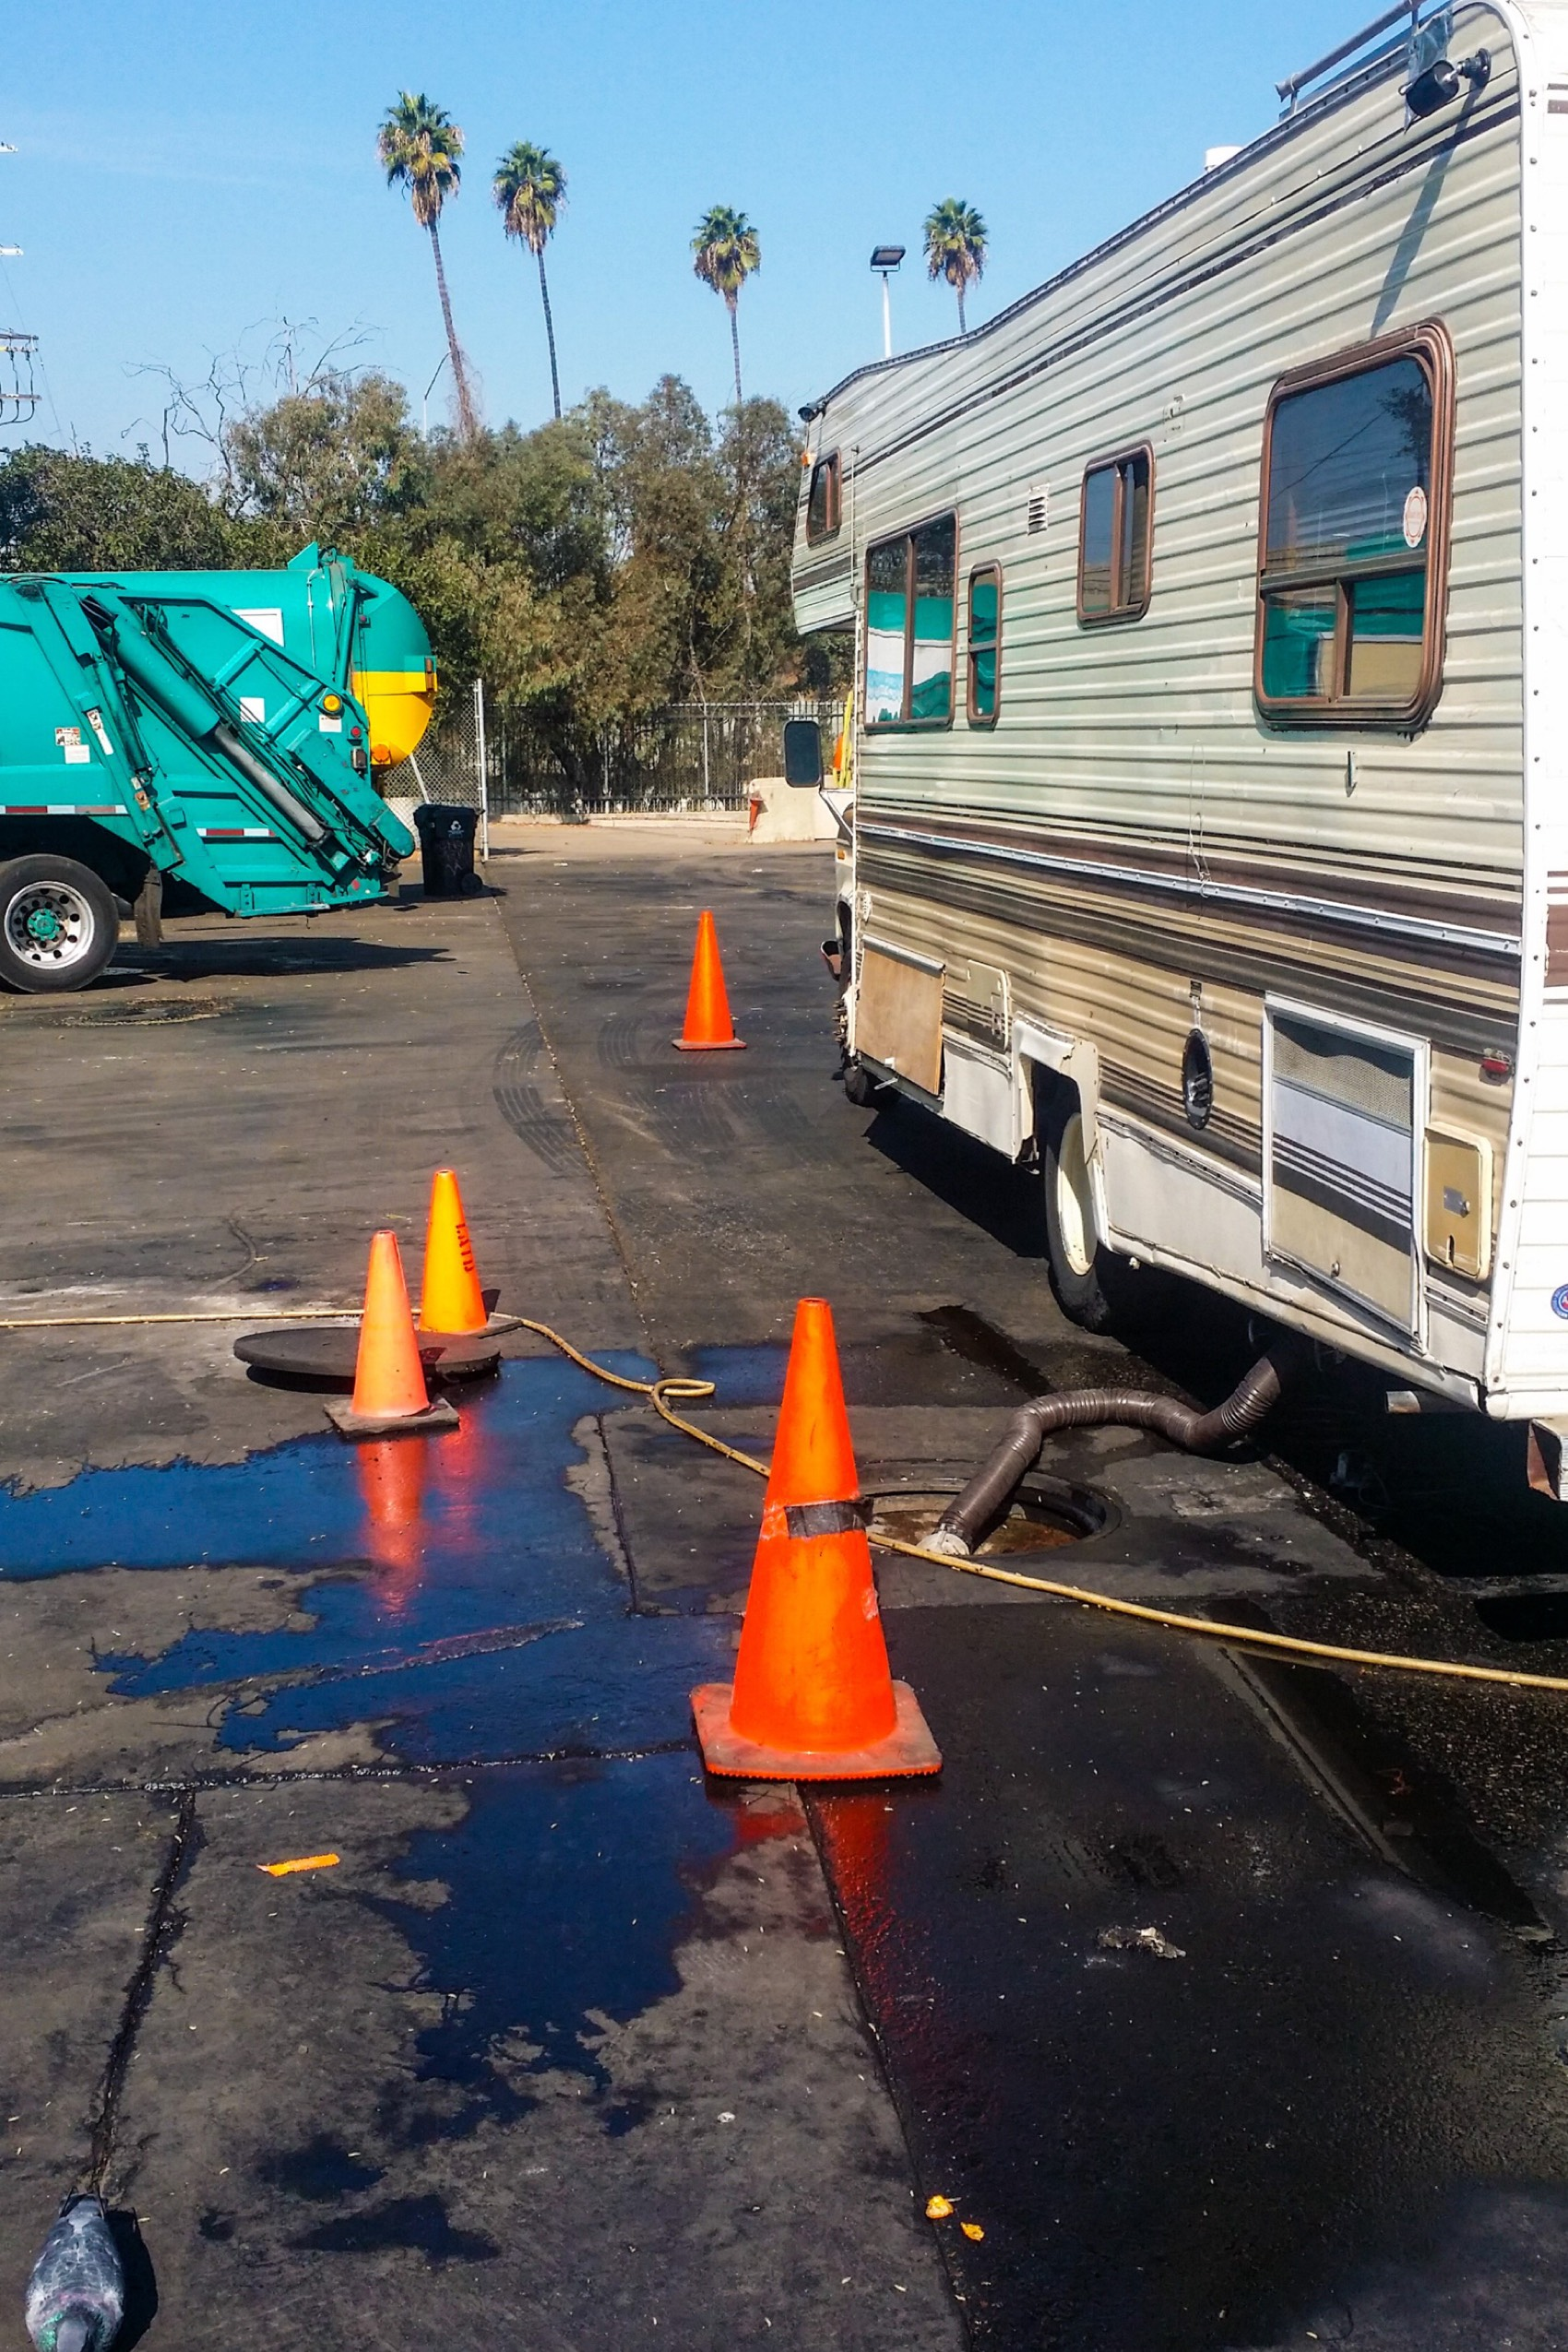 RV Waste Disposal Site in Lincoln Heights Provided by Councilmember Gil Cedillo